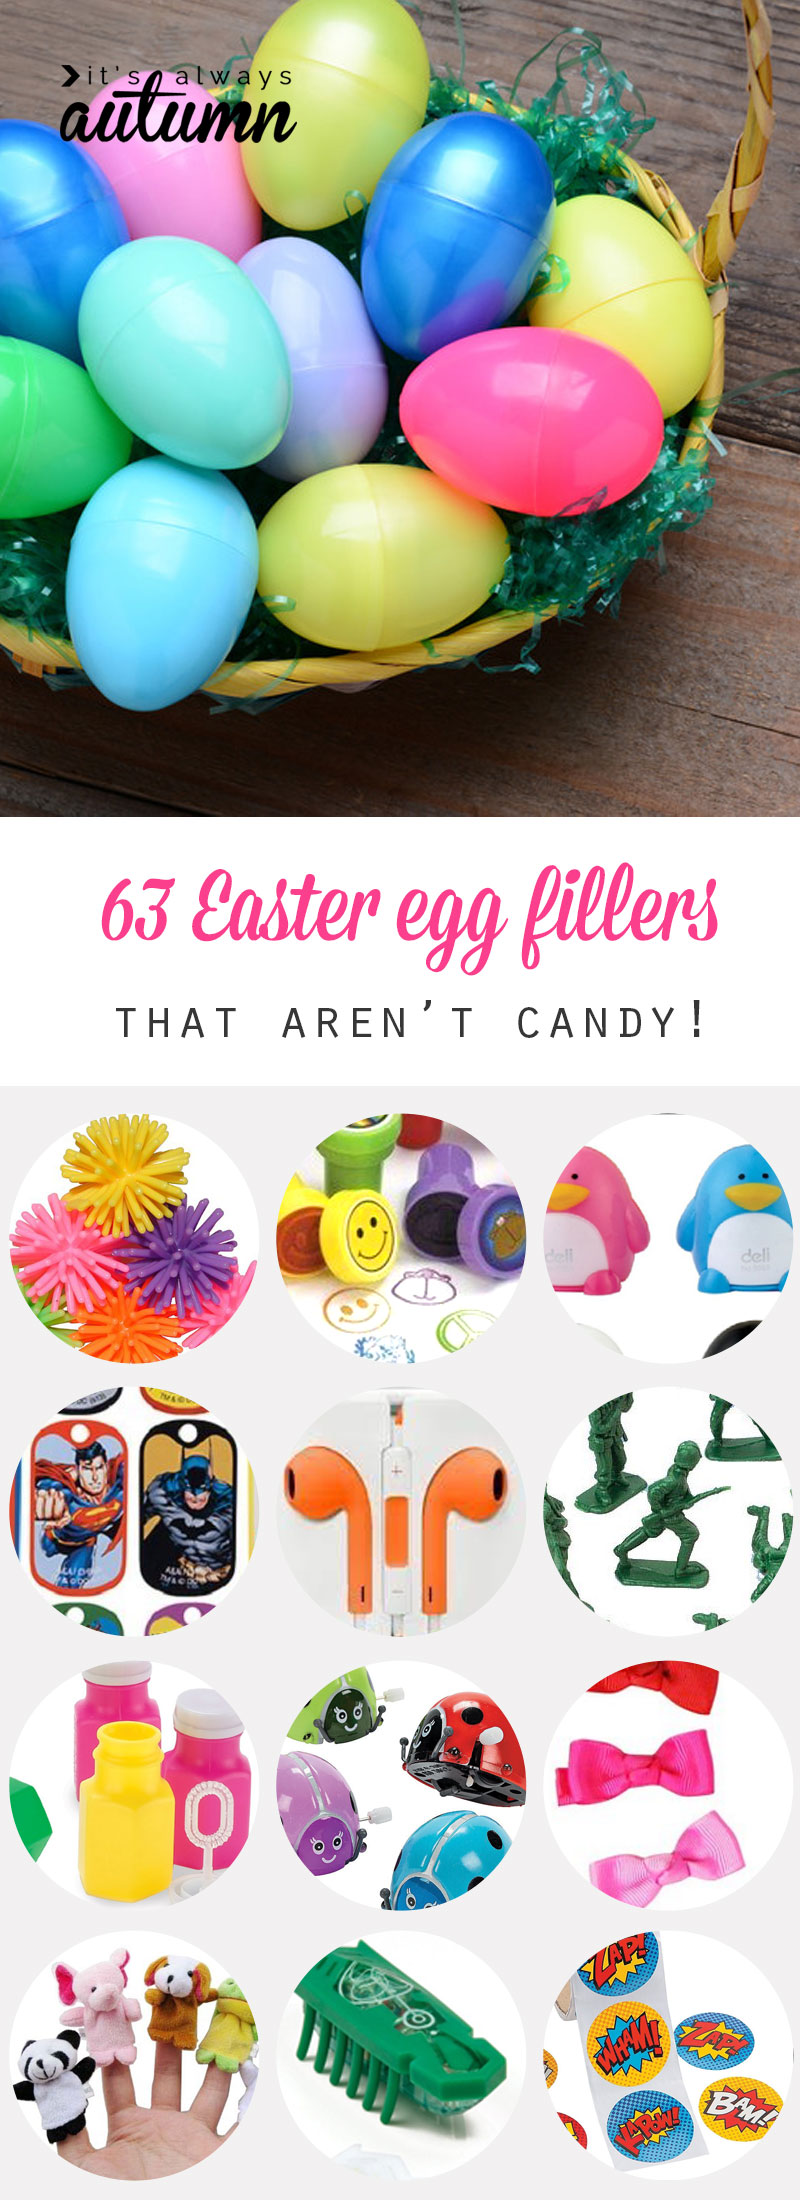 pics How to Choose NonCandy Fillings for Plastic Easter Eggs